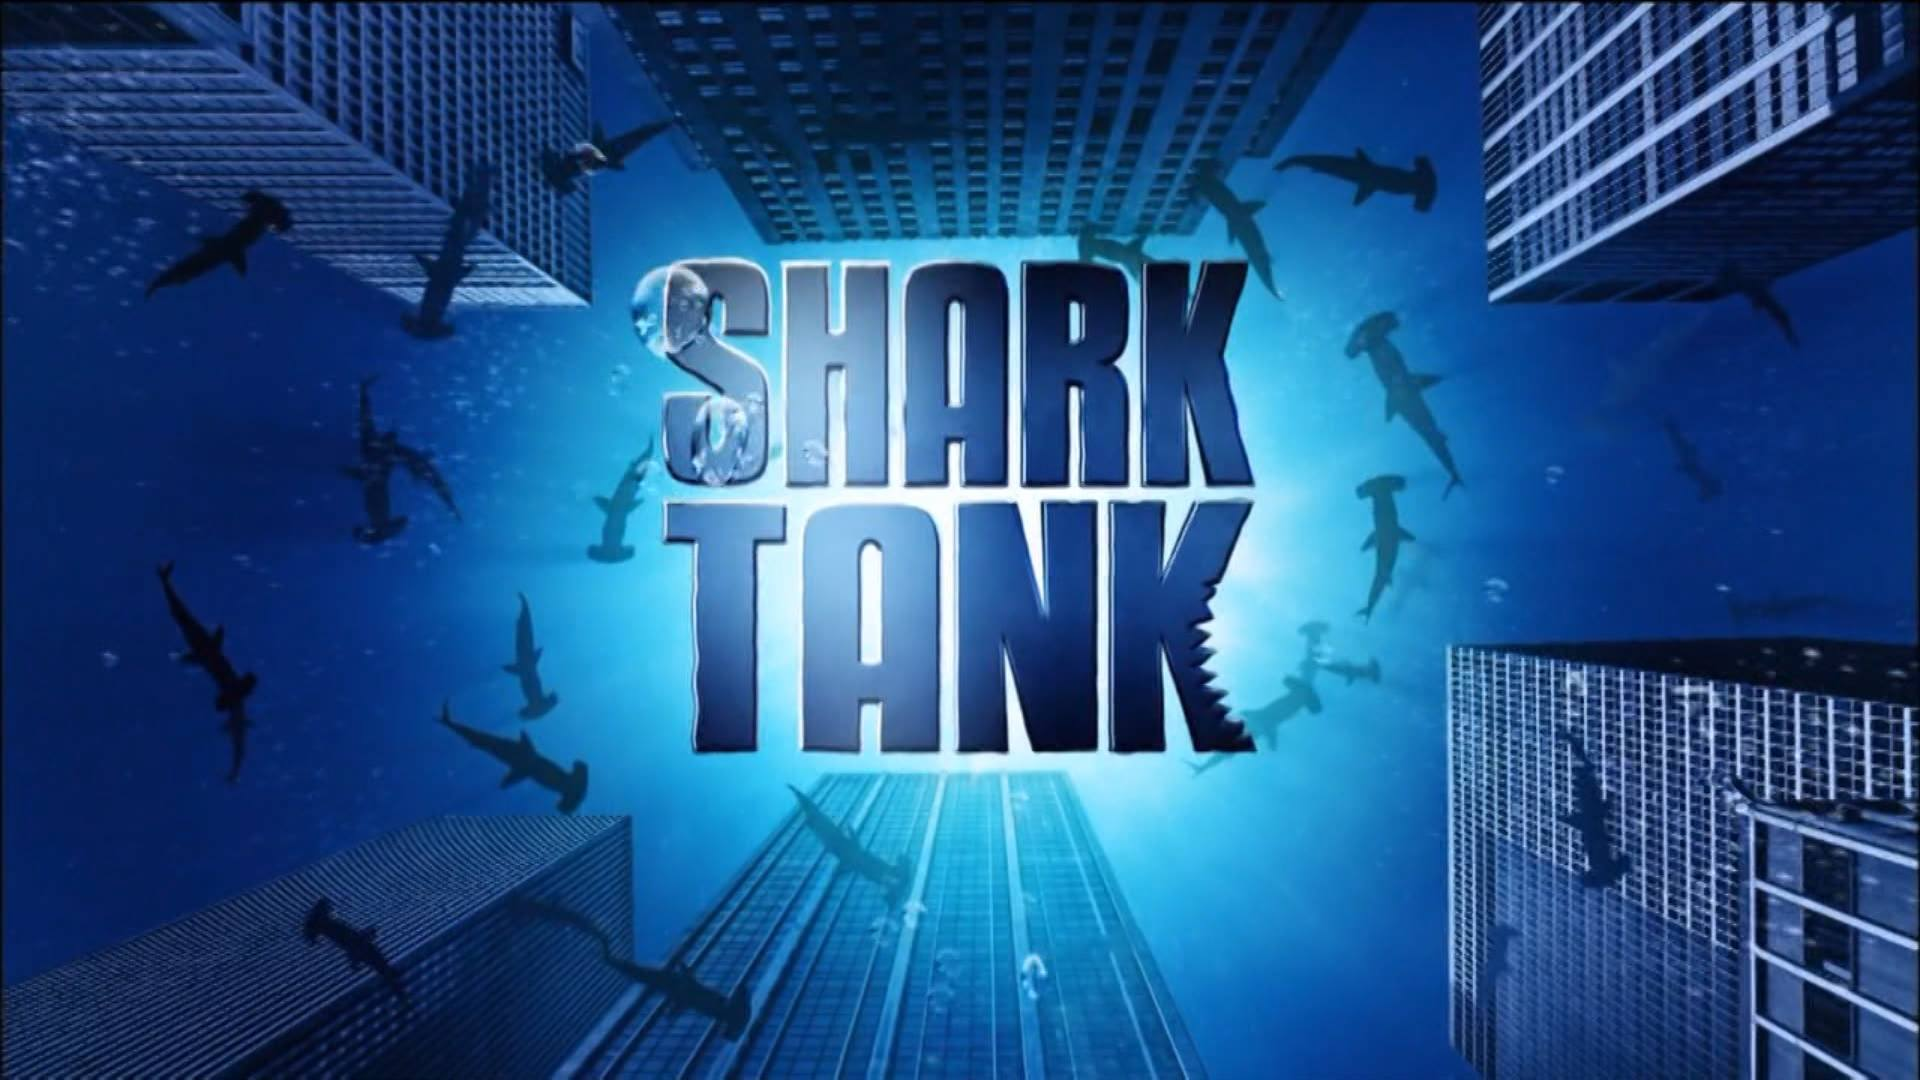 shark tank like google entrepreneurship images 2015